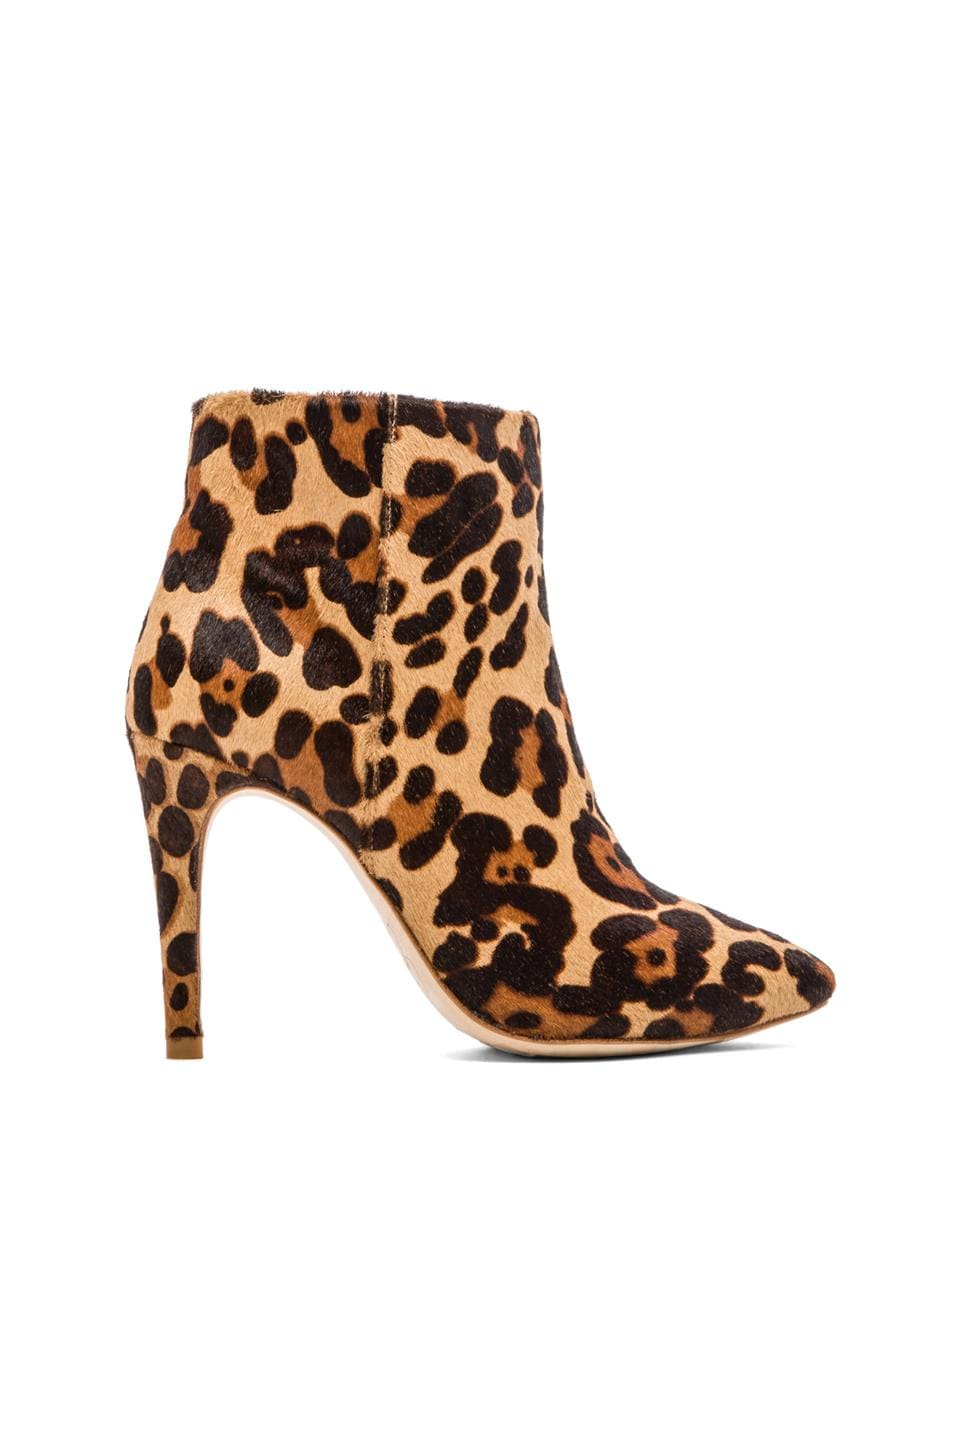 Joie Lina Calf Hair Boot in Leopard